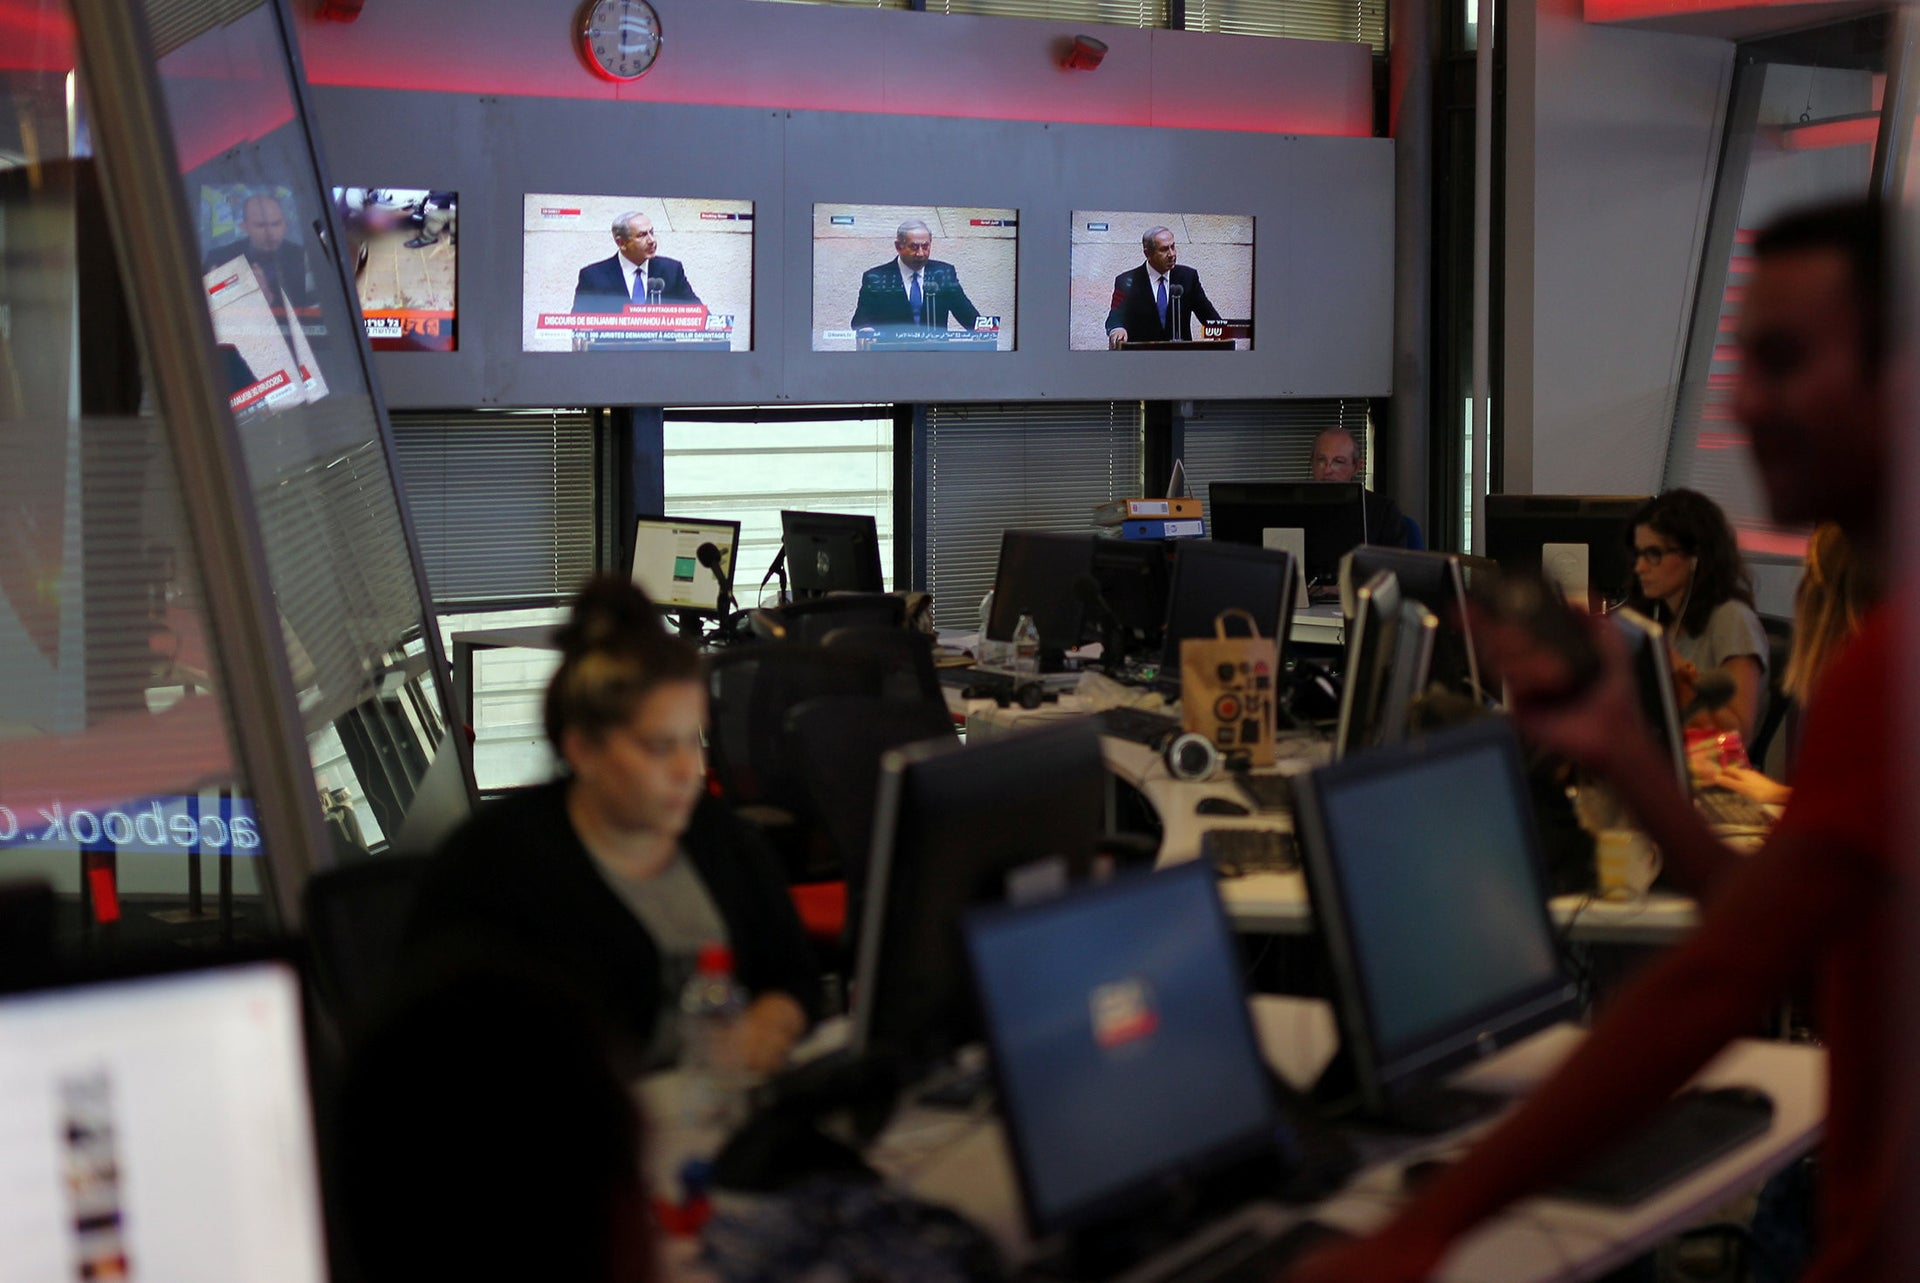 Staff in the i24News newsroom, October 13, 2015